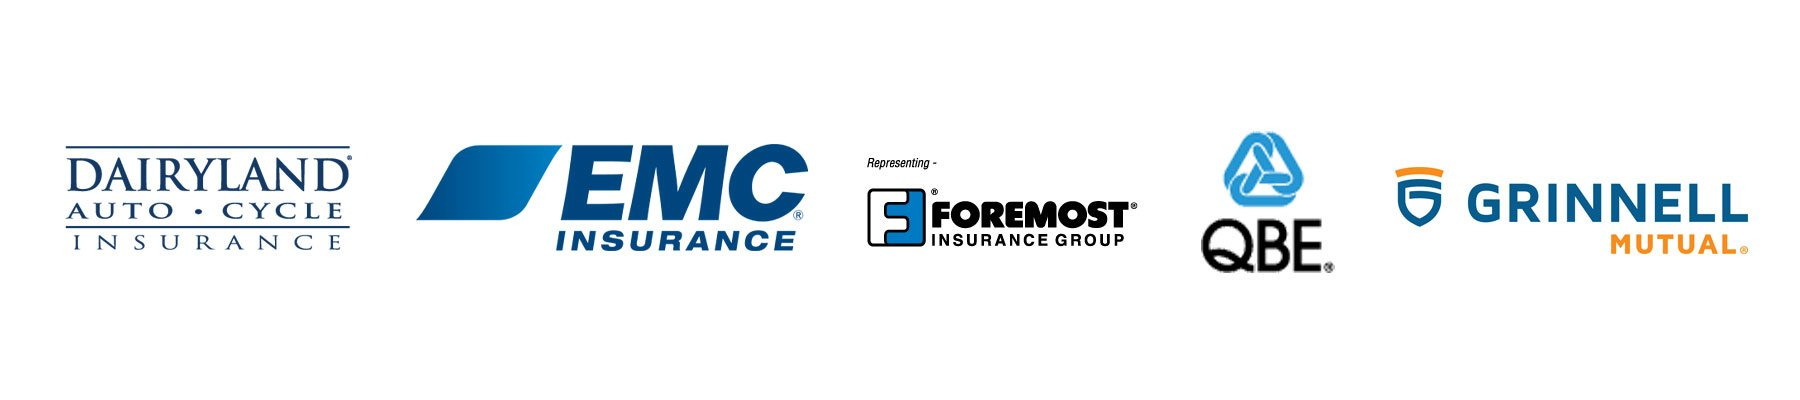 Dairyland Insurance Logo, EMC Insurance Logo, Foremost Insurance Group Logo, QBE Logo, Grinnell Mutual Logo